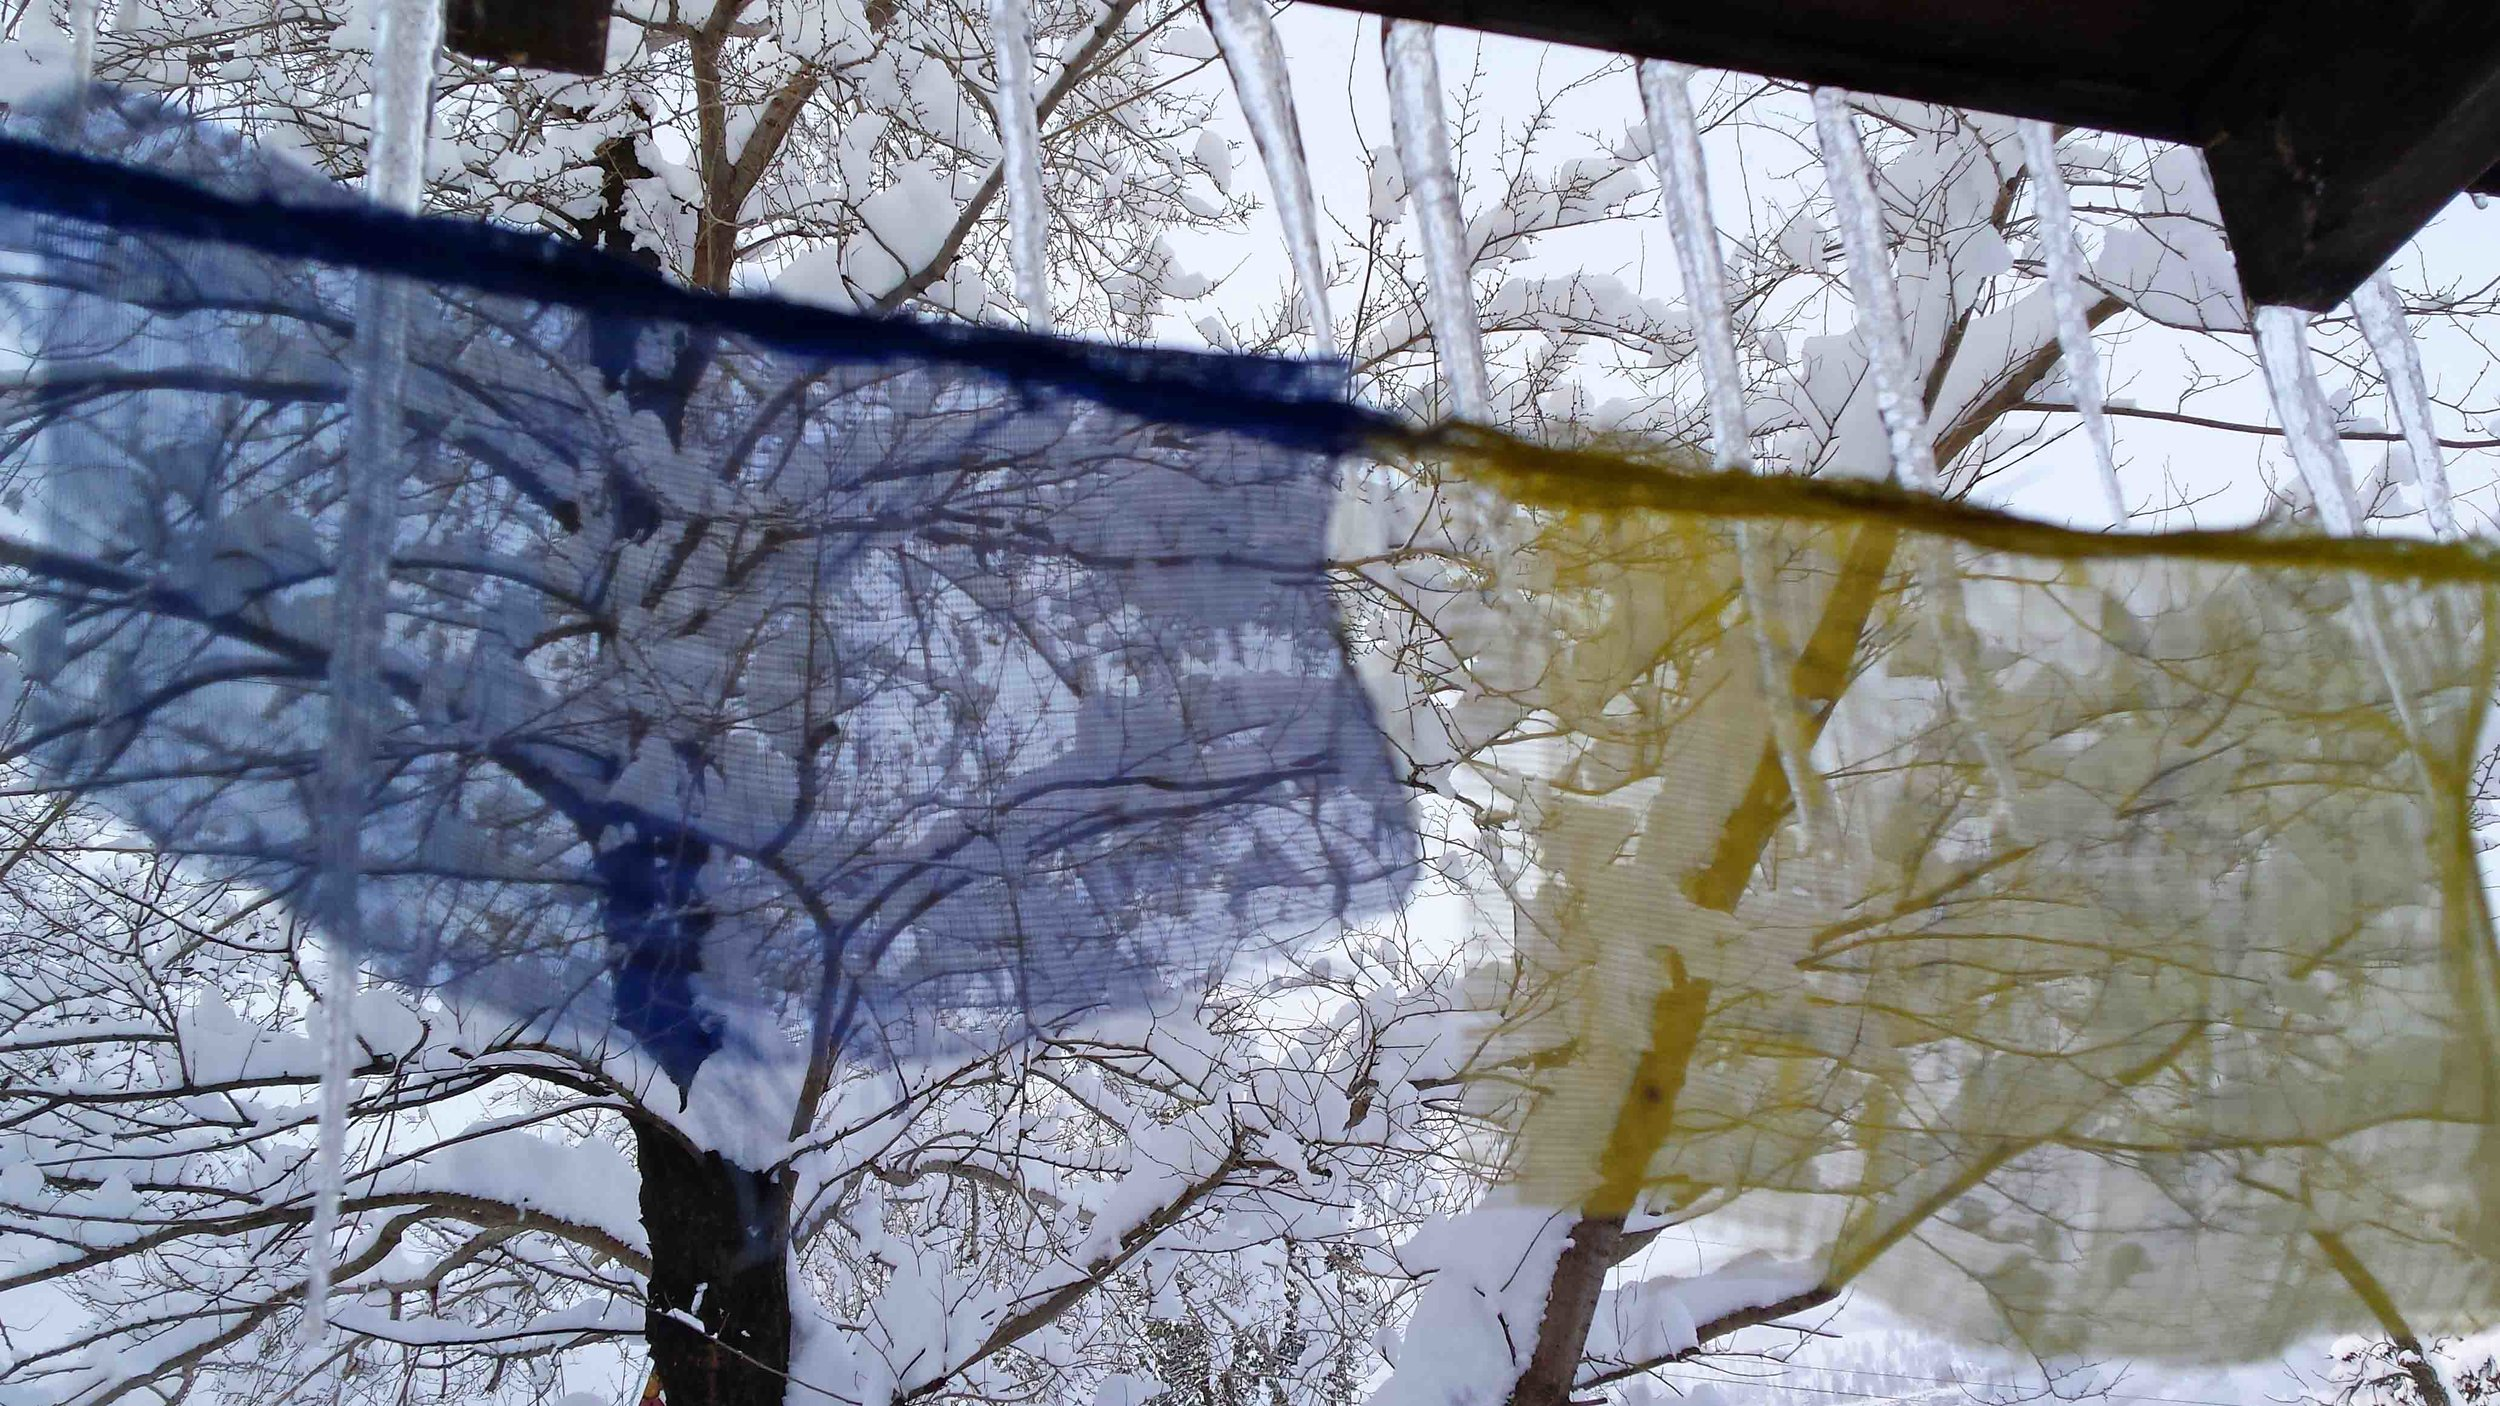 Prayer flags, front porch. Photo: (c) Barb Ayers, www.DogDiary.org